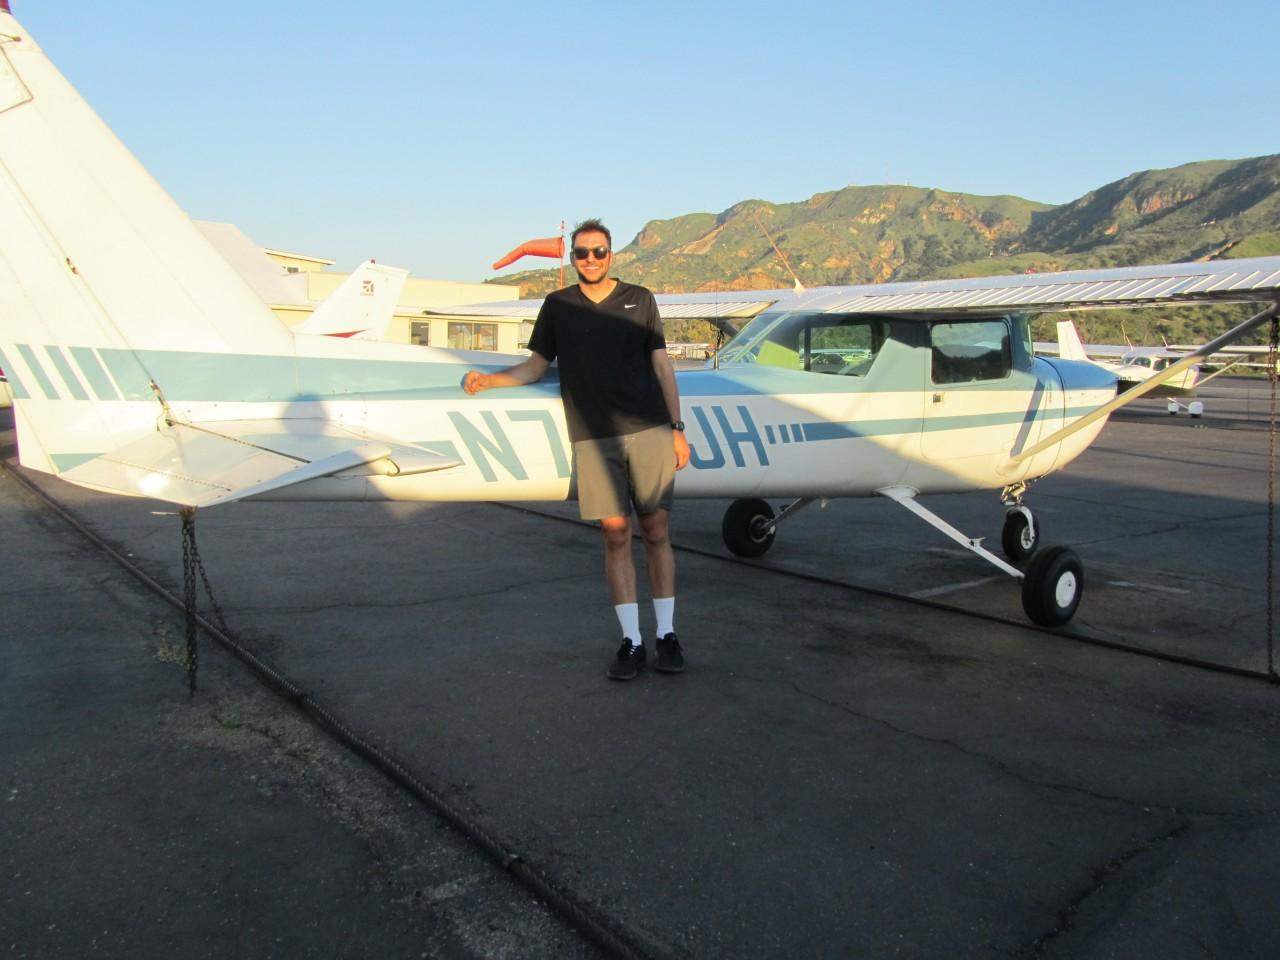 Private Pilot - Nick Shoemate